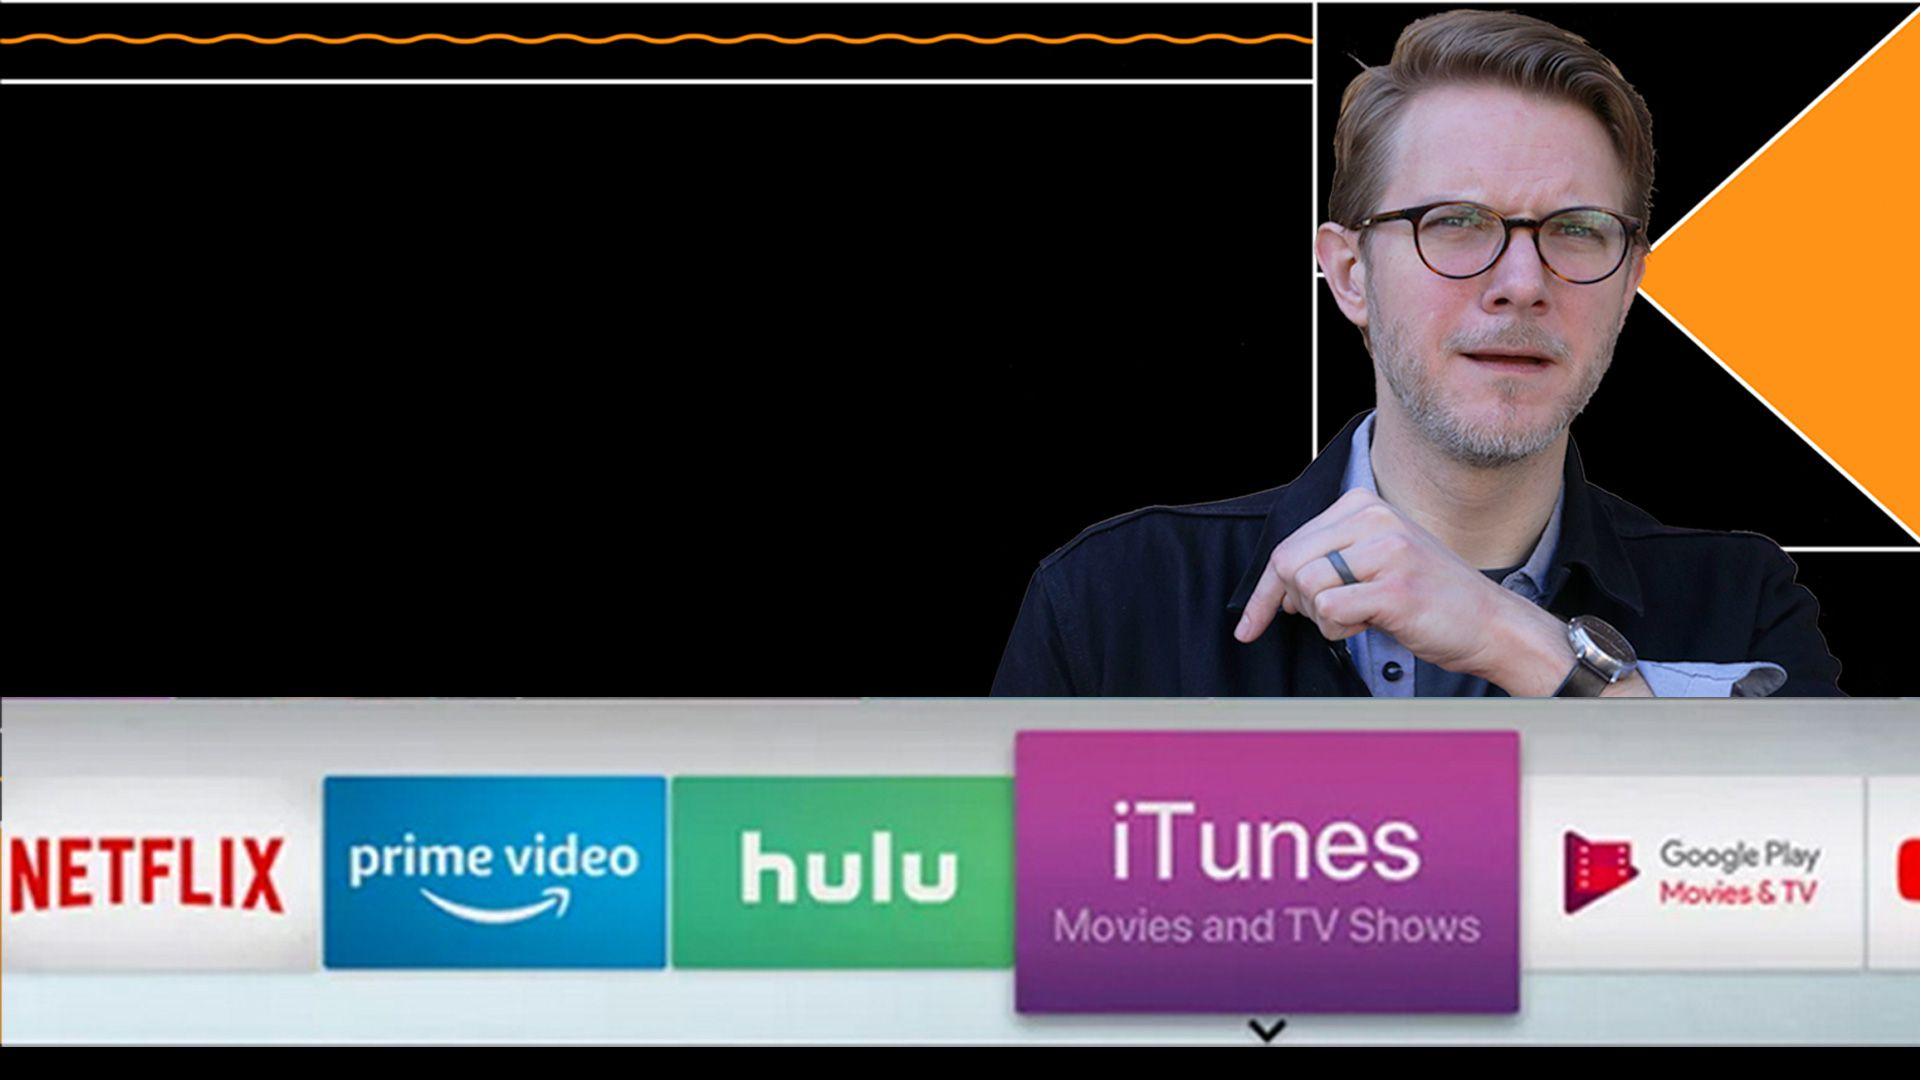 Apple's TV industry embrace was an inevitable surprise - The